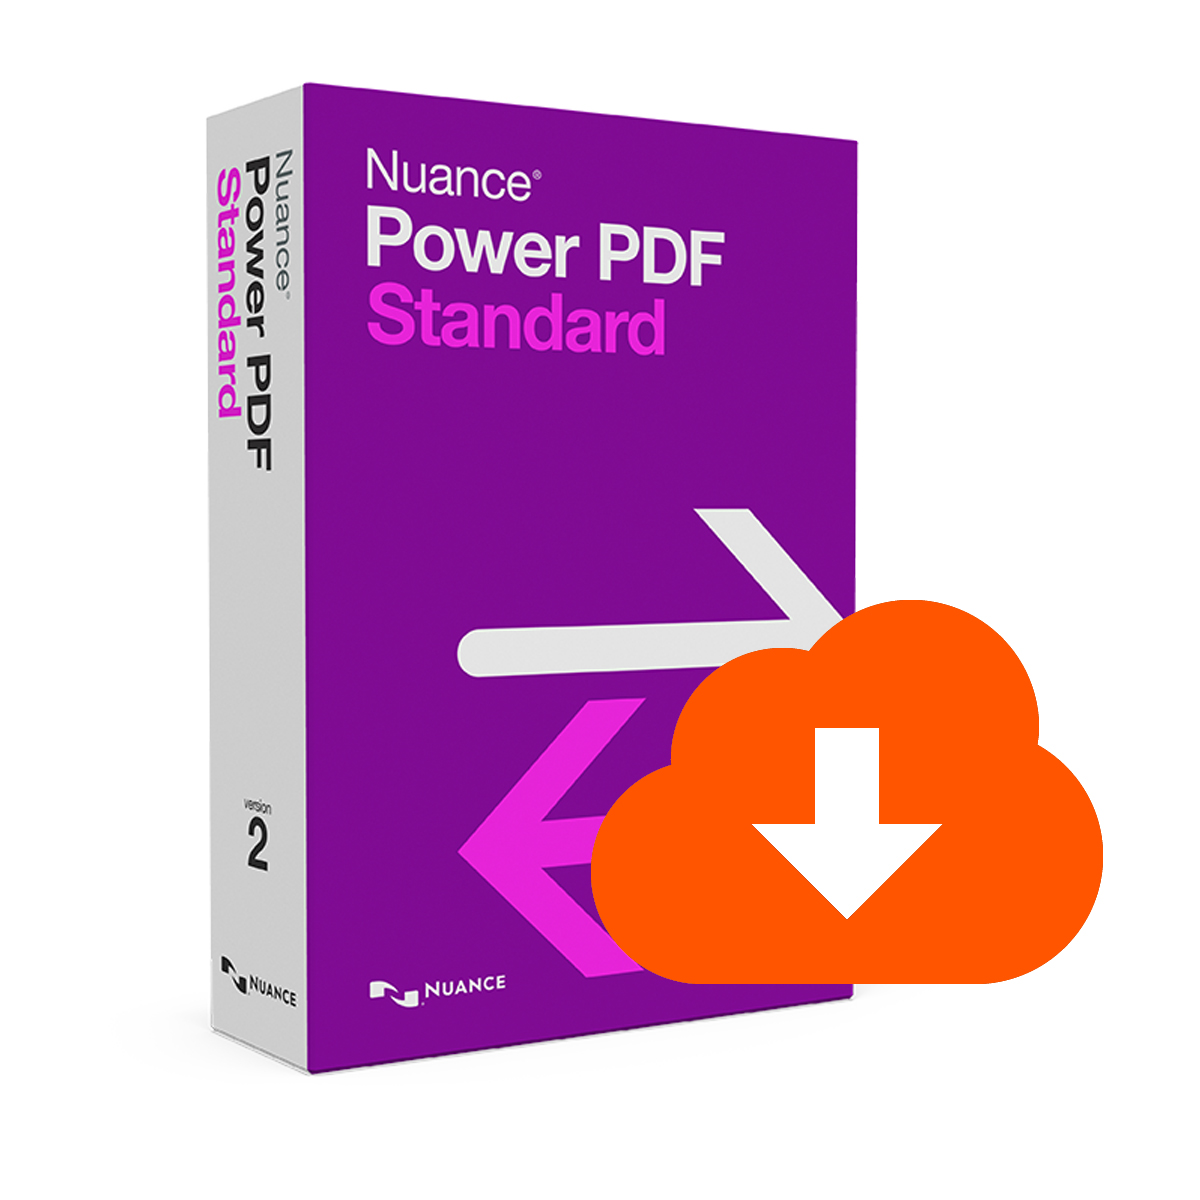 NUANCE ESD PDF Standard 2.0 Download Single User